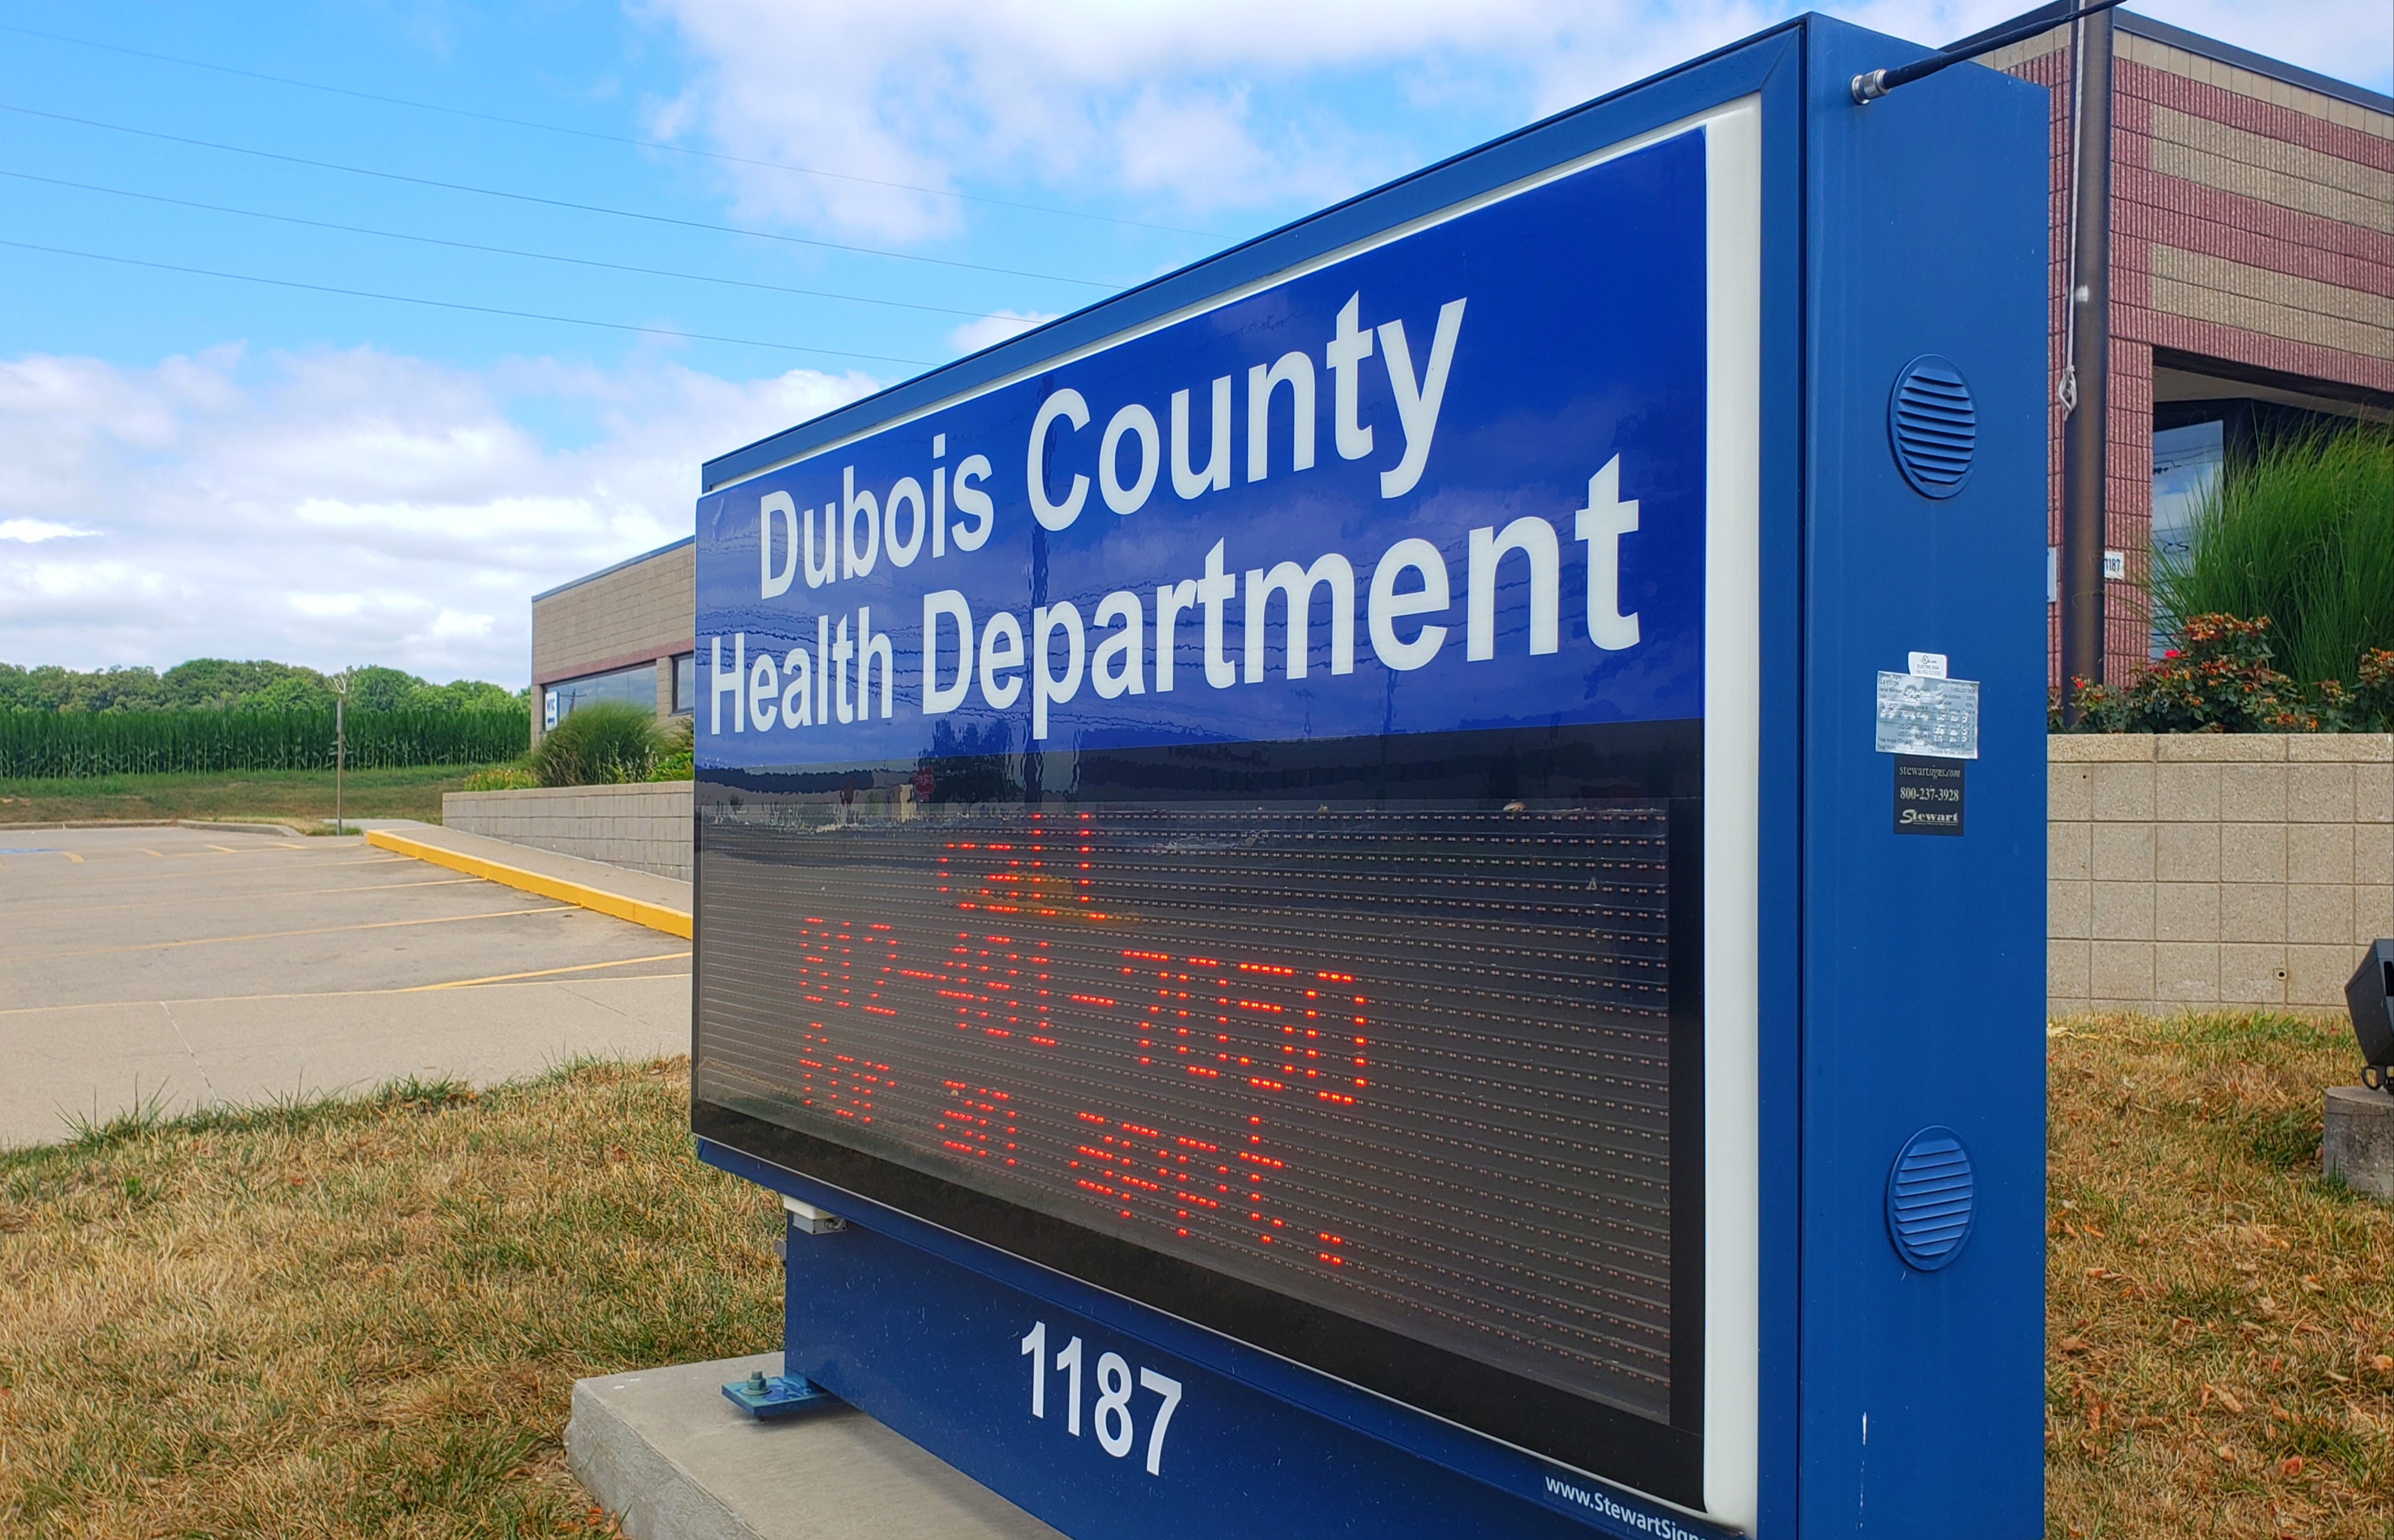 18 New Cases of COVID-19 Reported in Dubois County Friday Morning